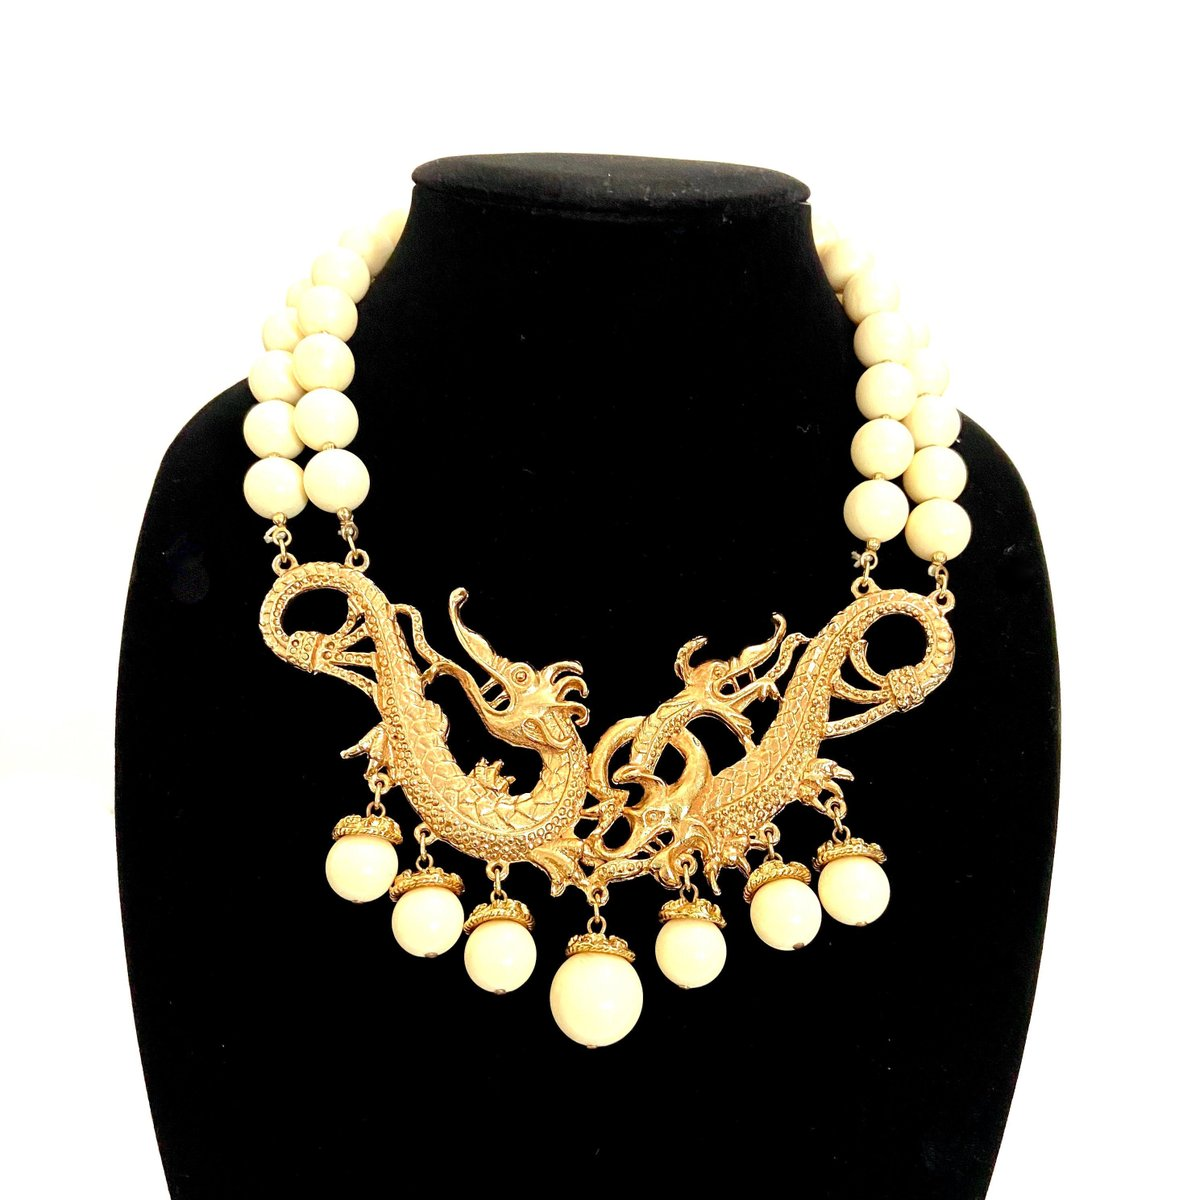 Rare Jules Van Rouge Entwined Dragon Necklace Runway Worthy Off White Lucite Beads French Haute Couture Statement Piece Gift for Her https://etsy.me/3e1p84F  #RARE #Frenchcouture #JulesVanRouge #entwineddragons #goldplated #ivoryresin pls follow 4 shop newspic.twitter.com/dWmL16A45R